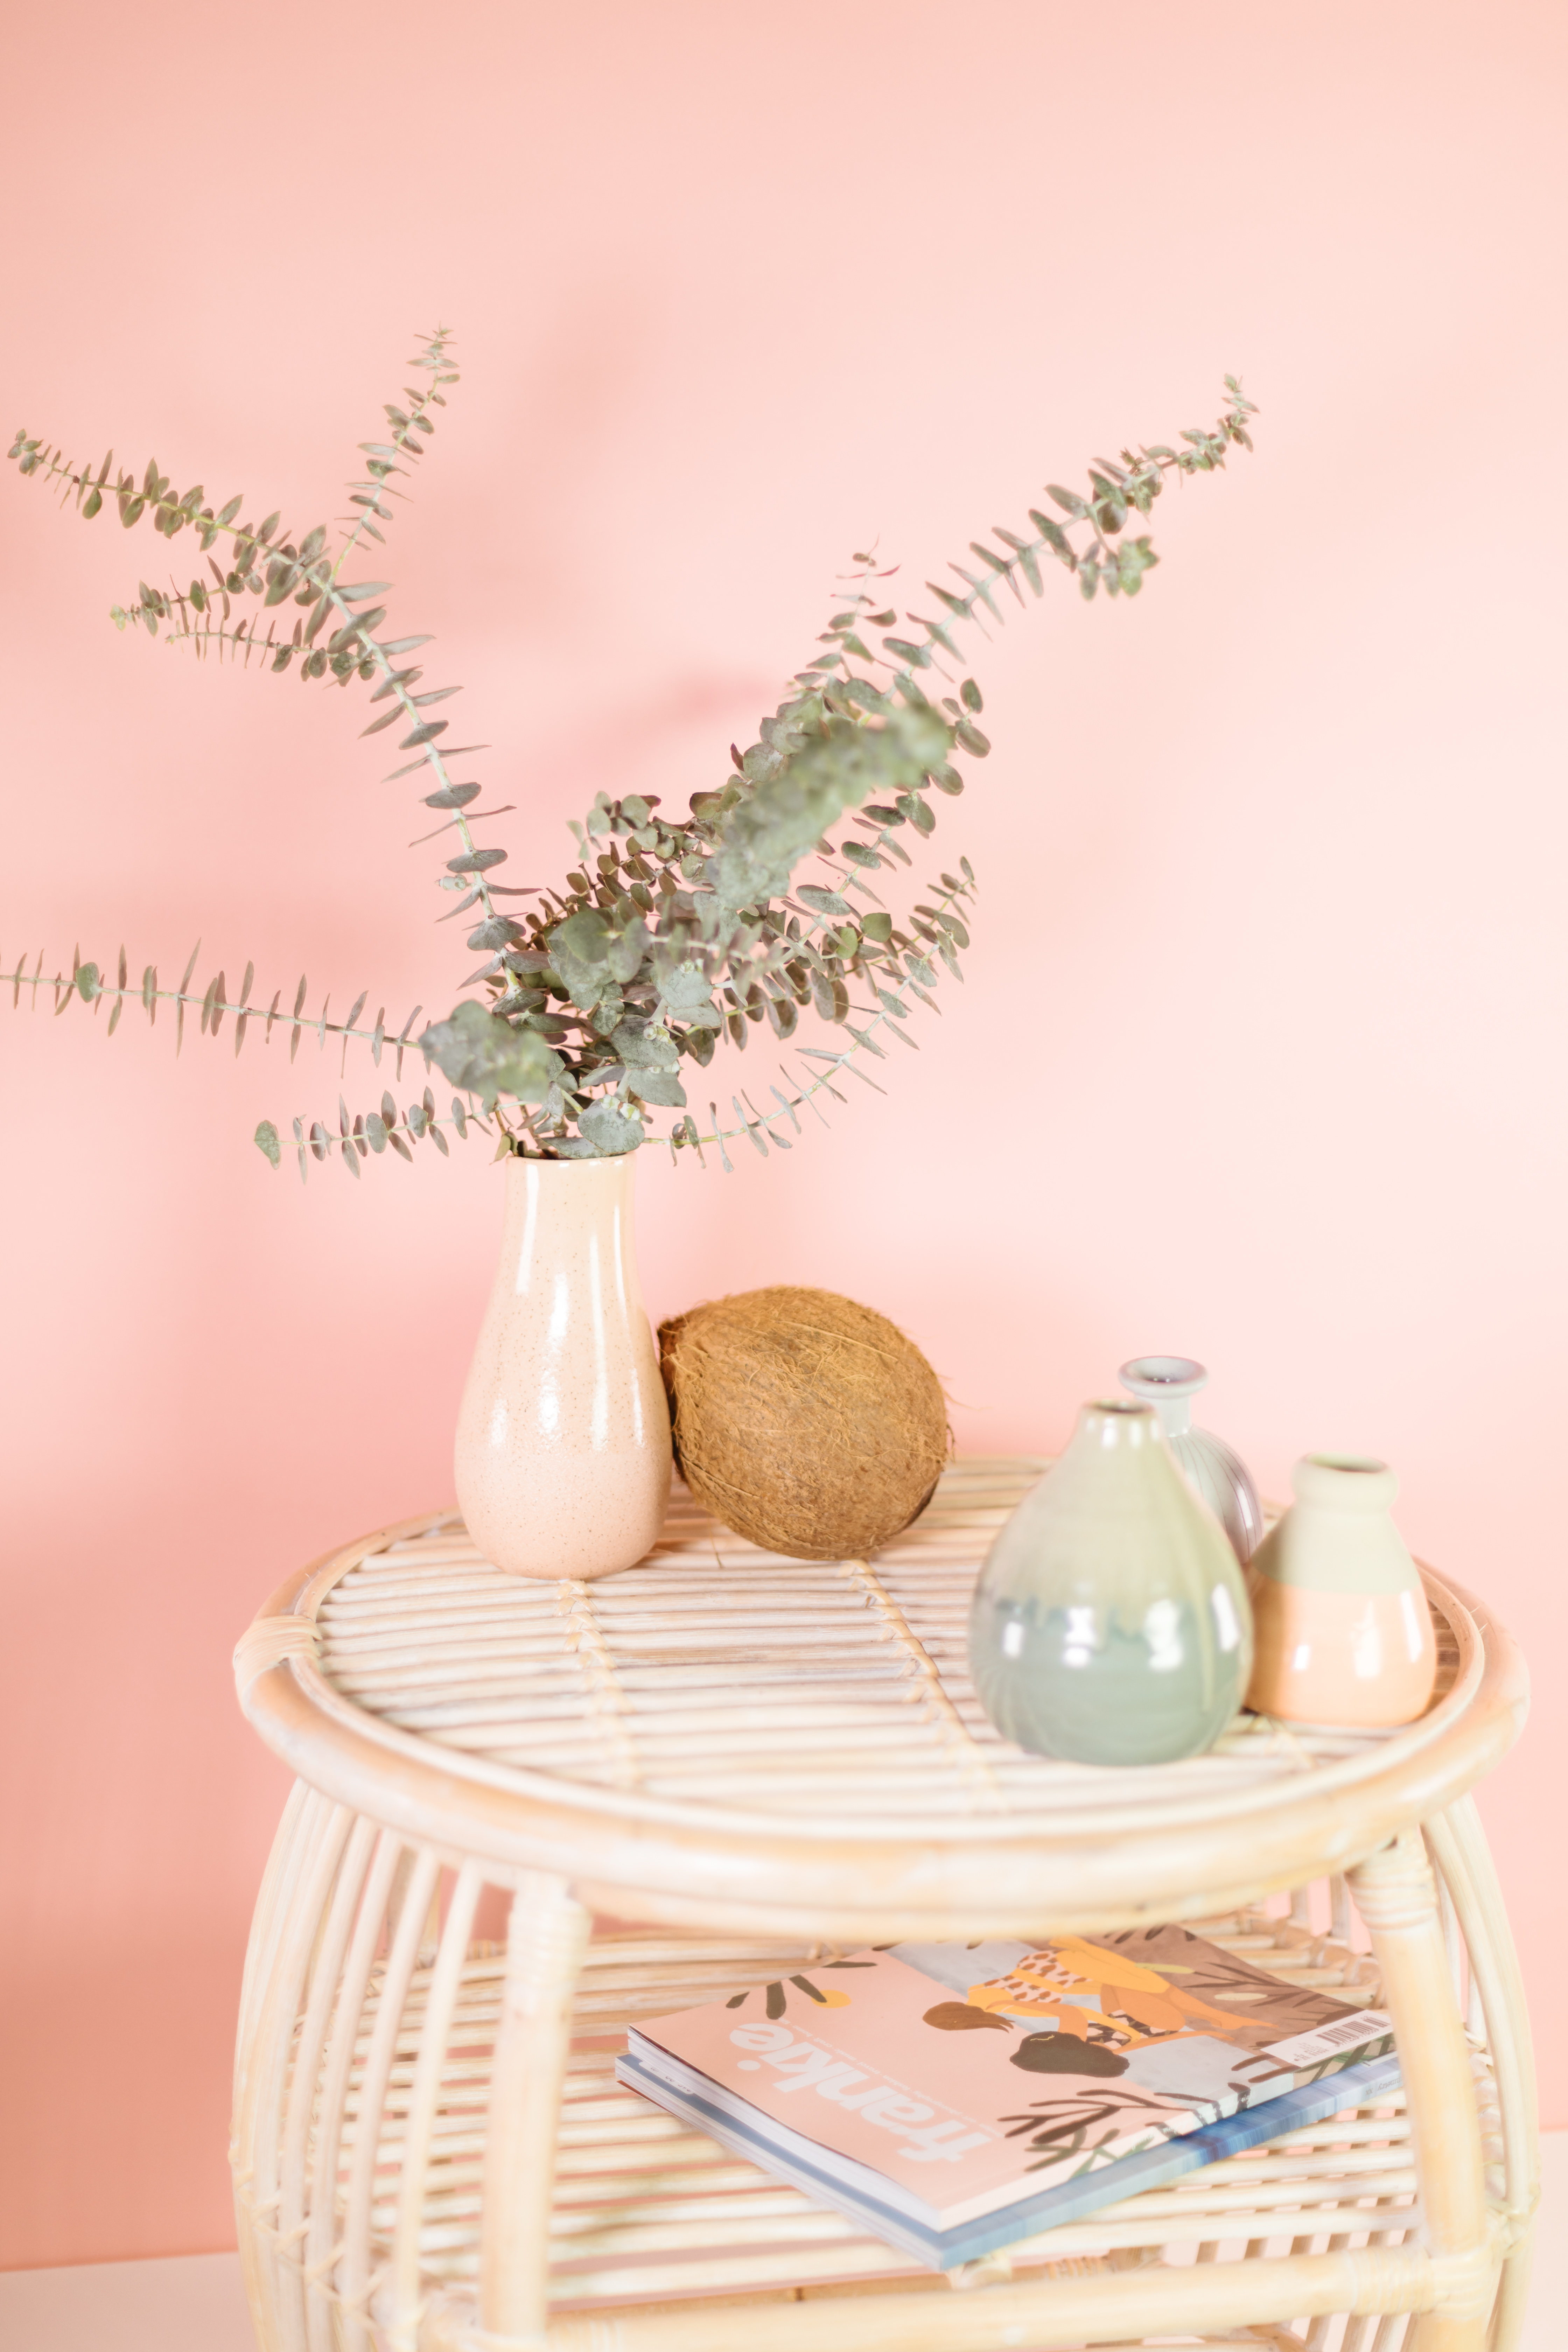 Autumn homewares at Stockland Burleigh Heads